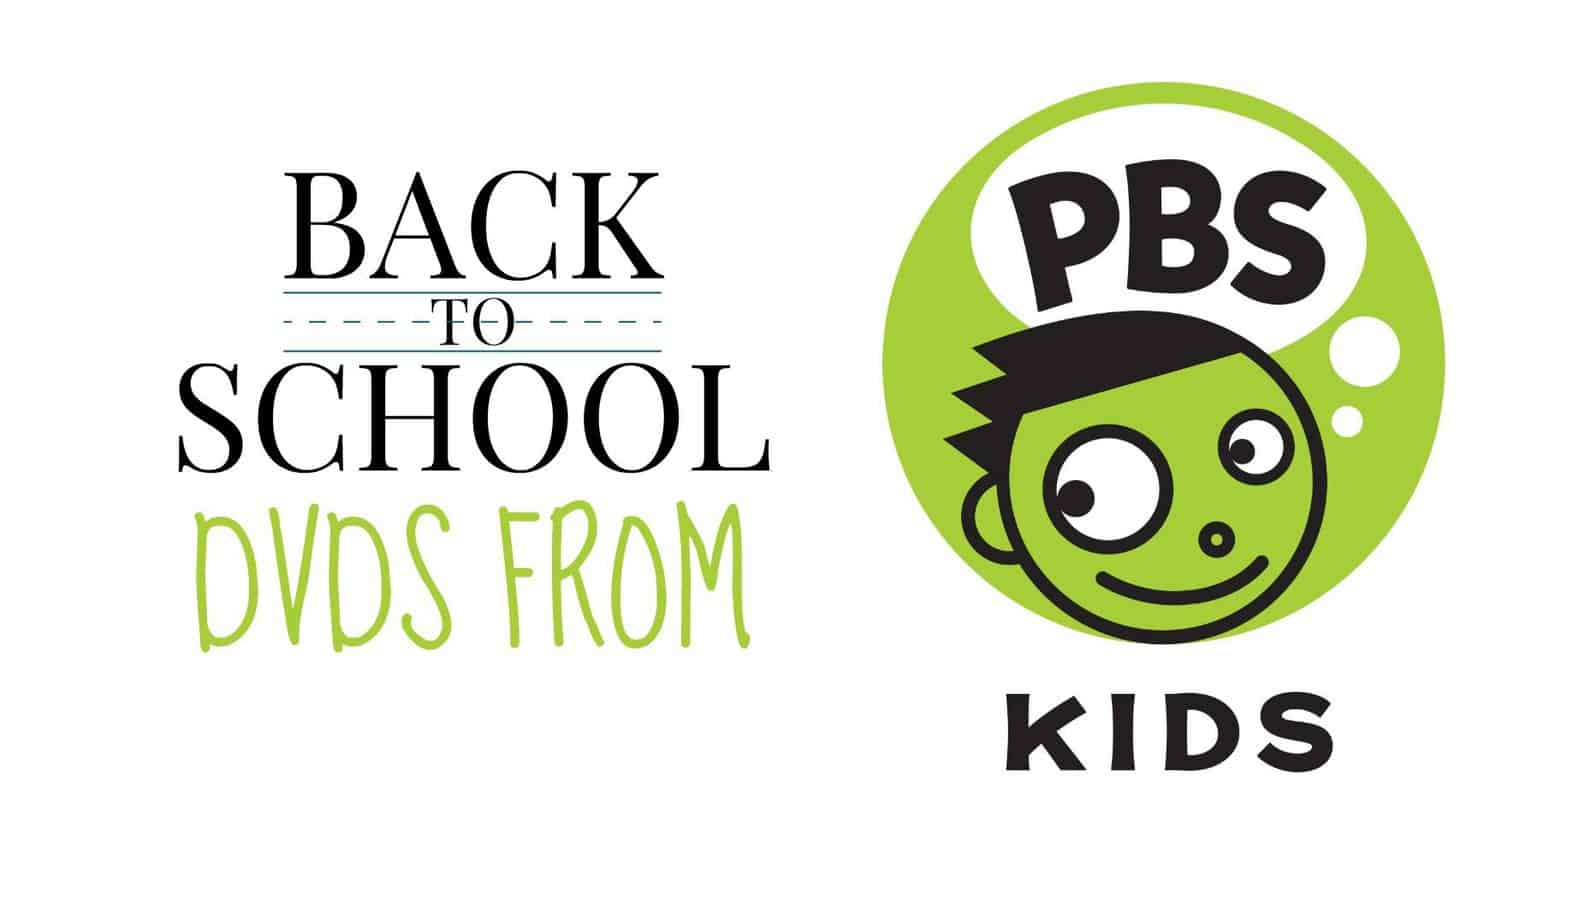 Back To School DVD's From PBS Kids 2